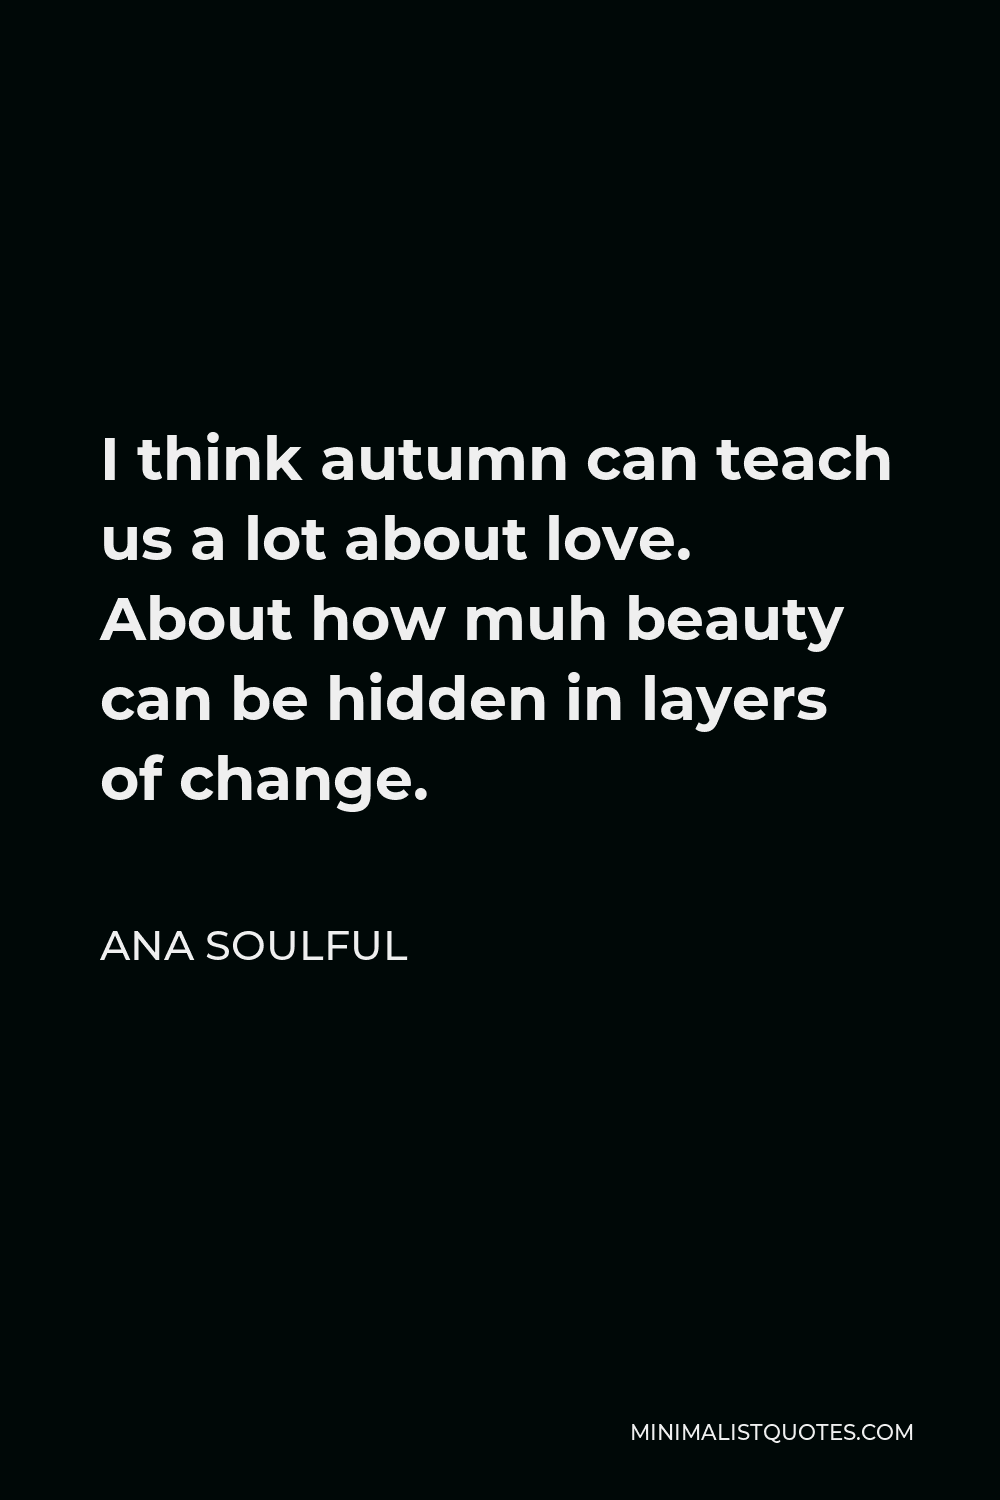 Ana Soulful Quote - I think autumn can teach us a lot about love. About how muh beauty can be hidden in layers of change.